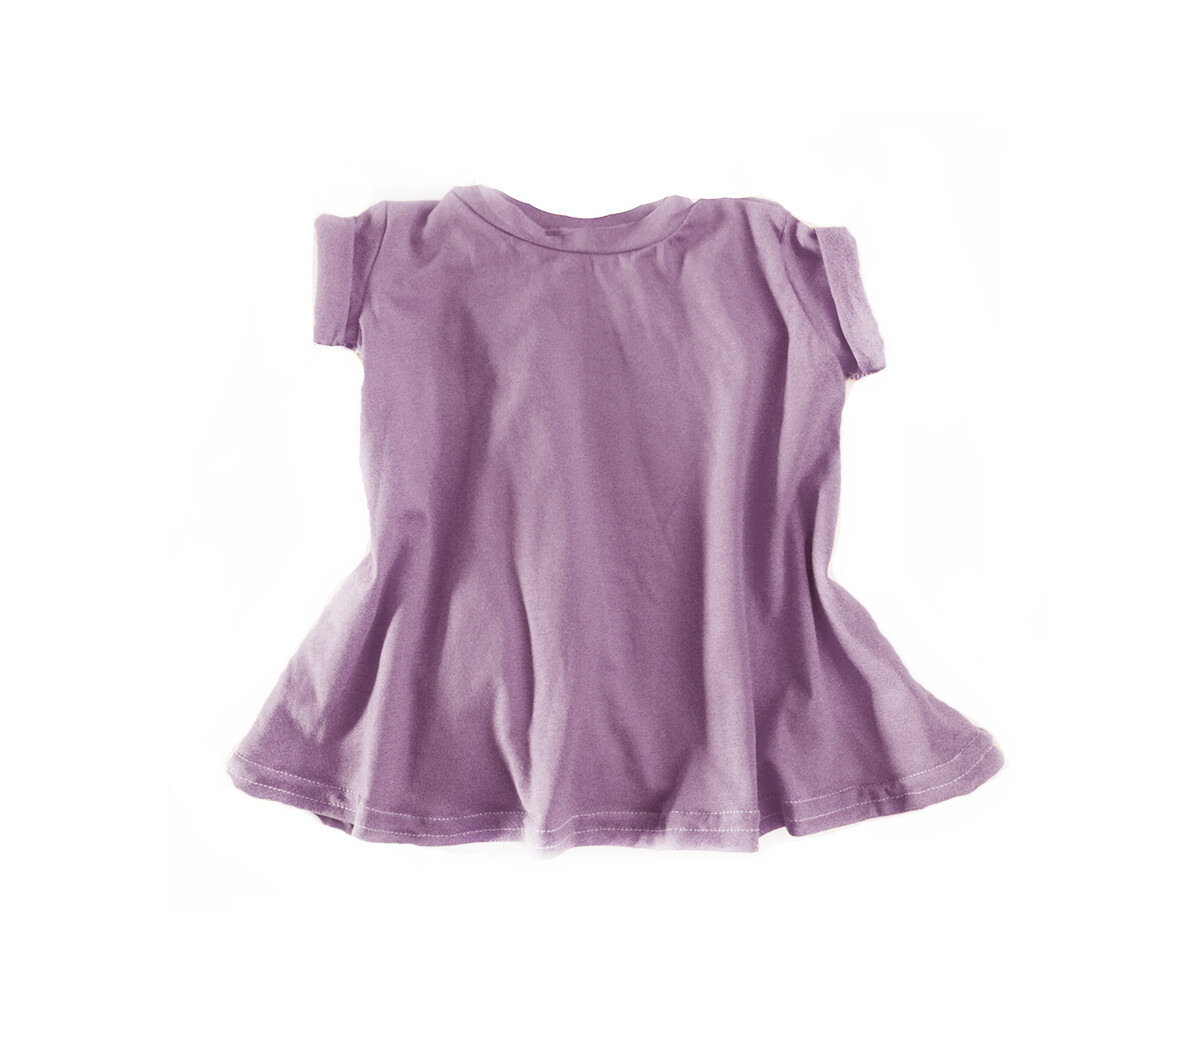 Little Sprout™ Grow with Me T-Shirt Dress | Mauve | Tencel